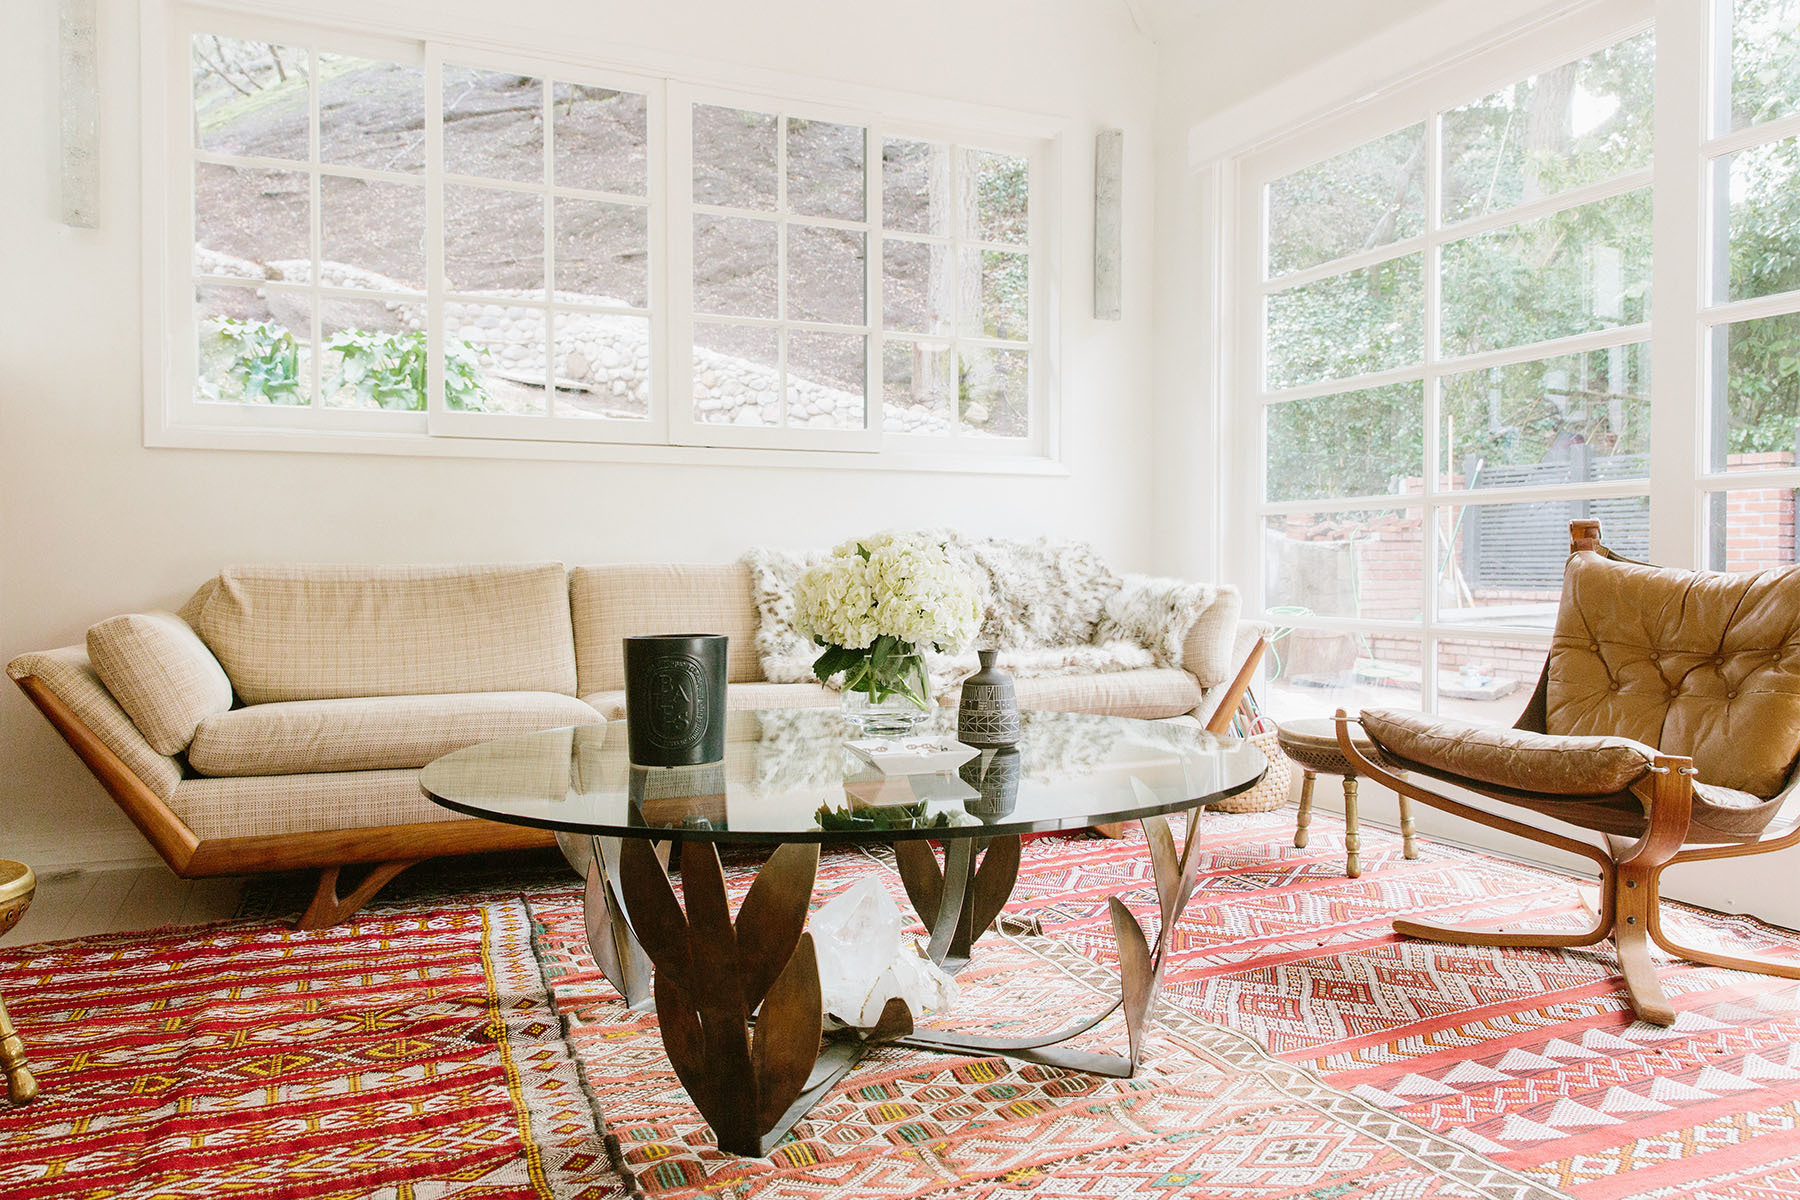 """Good rugs really tie a room together,"" says Sanders, of her expansive collection of Moroccan rugs, many of which sourced via a traveling friend. 1stdibs Vintage Furniture 